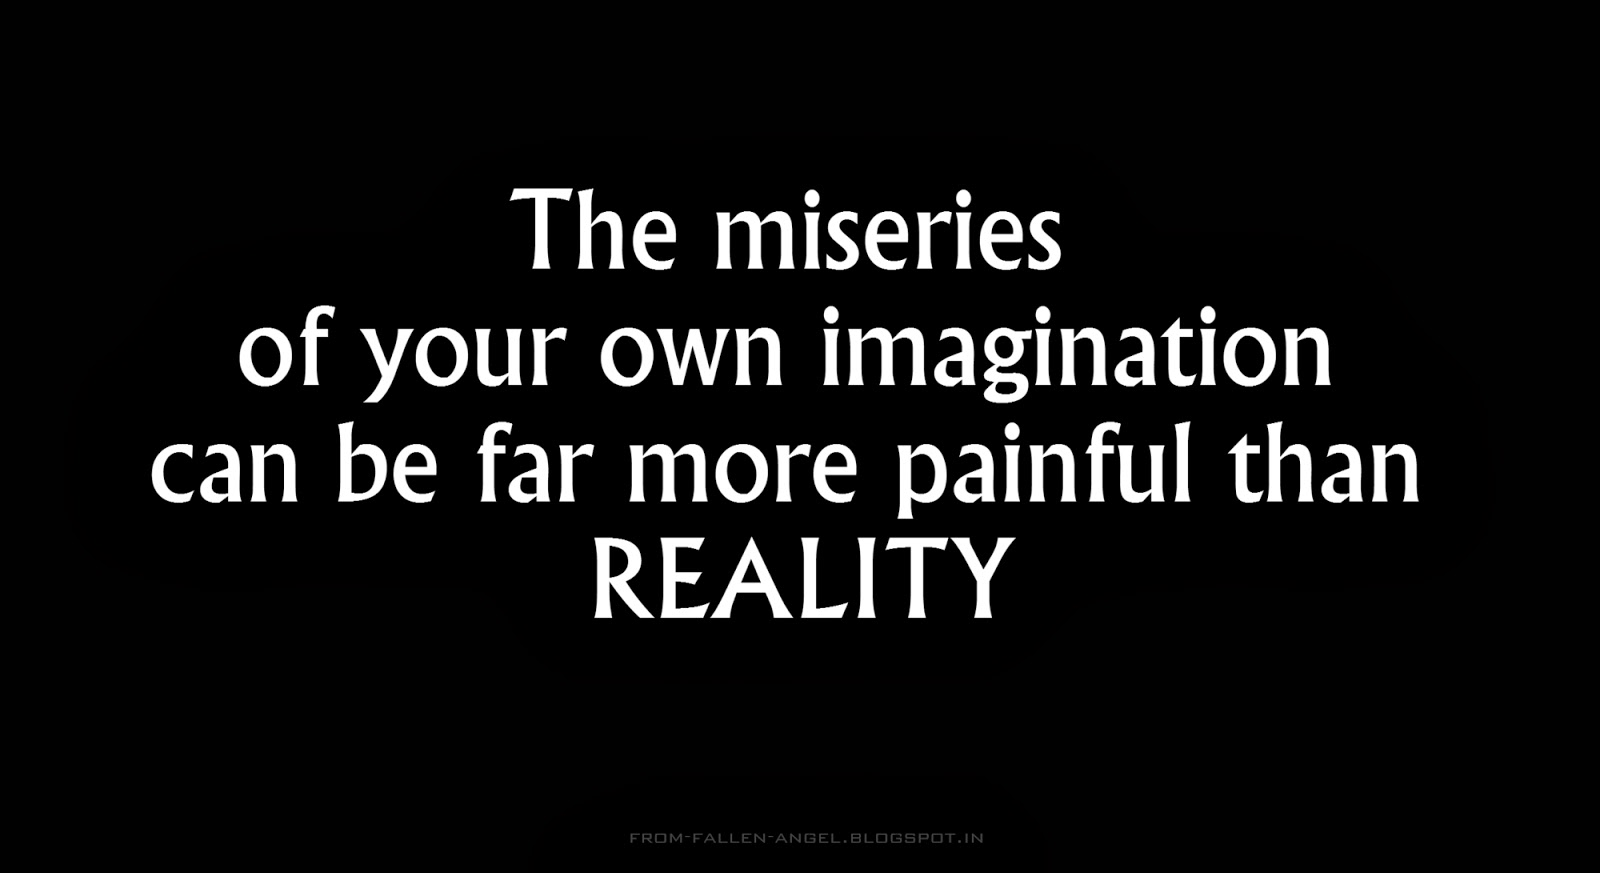 The miseries of your own imagination can be far more painful than reality.